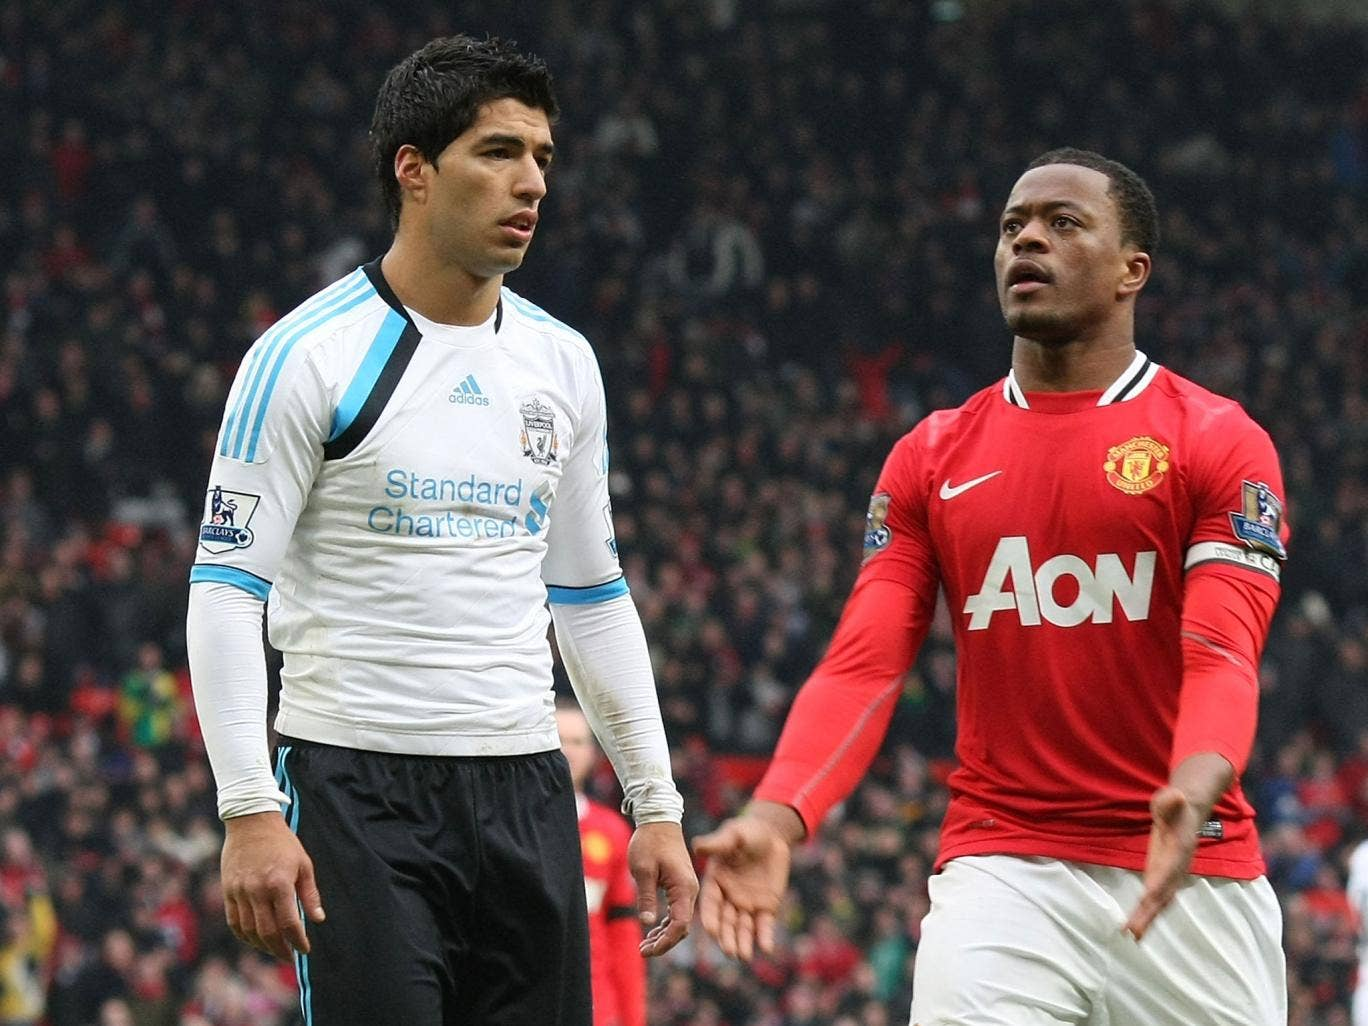 Luis Suarez has claimed that the racism allegations Patrice Evra made against him in 2011 were 'all false'